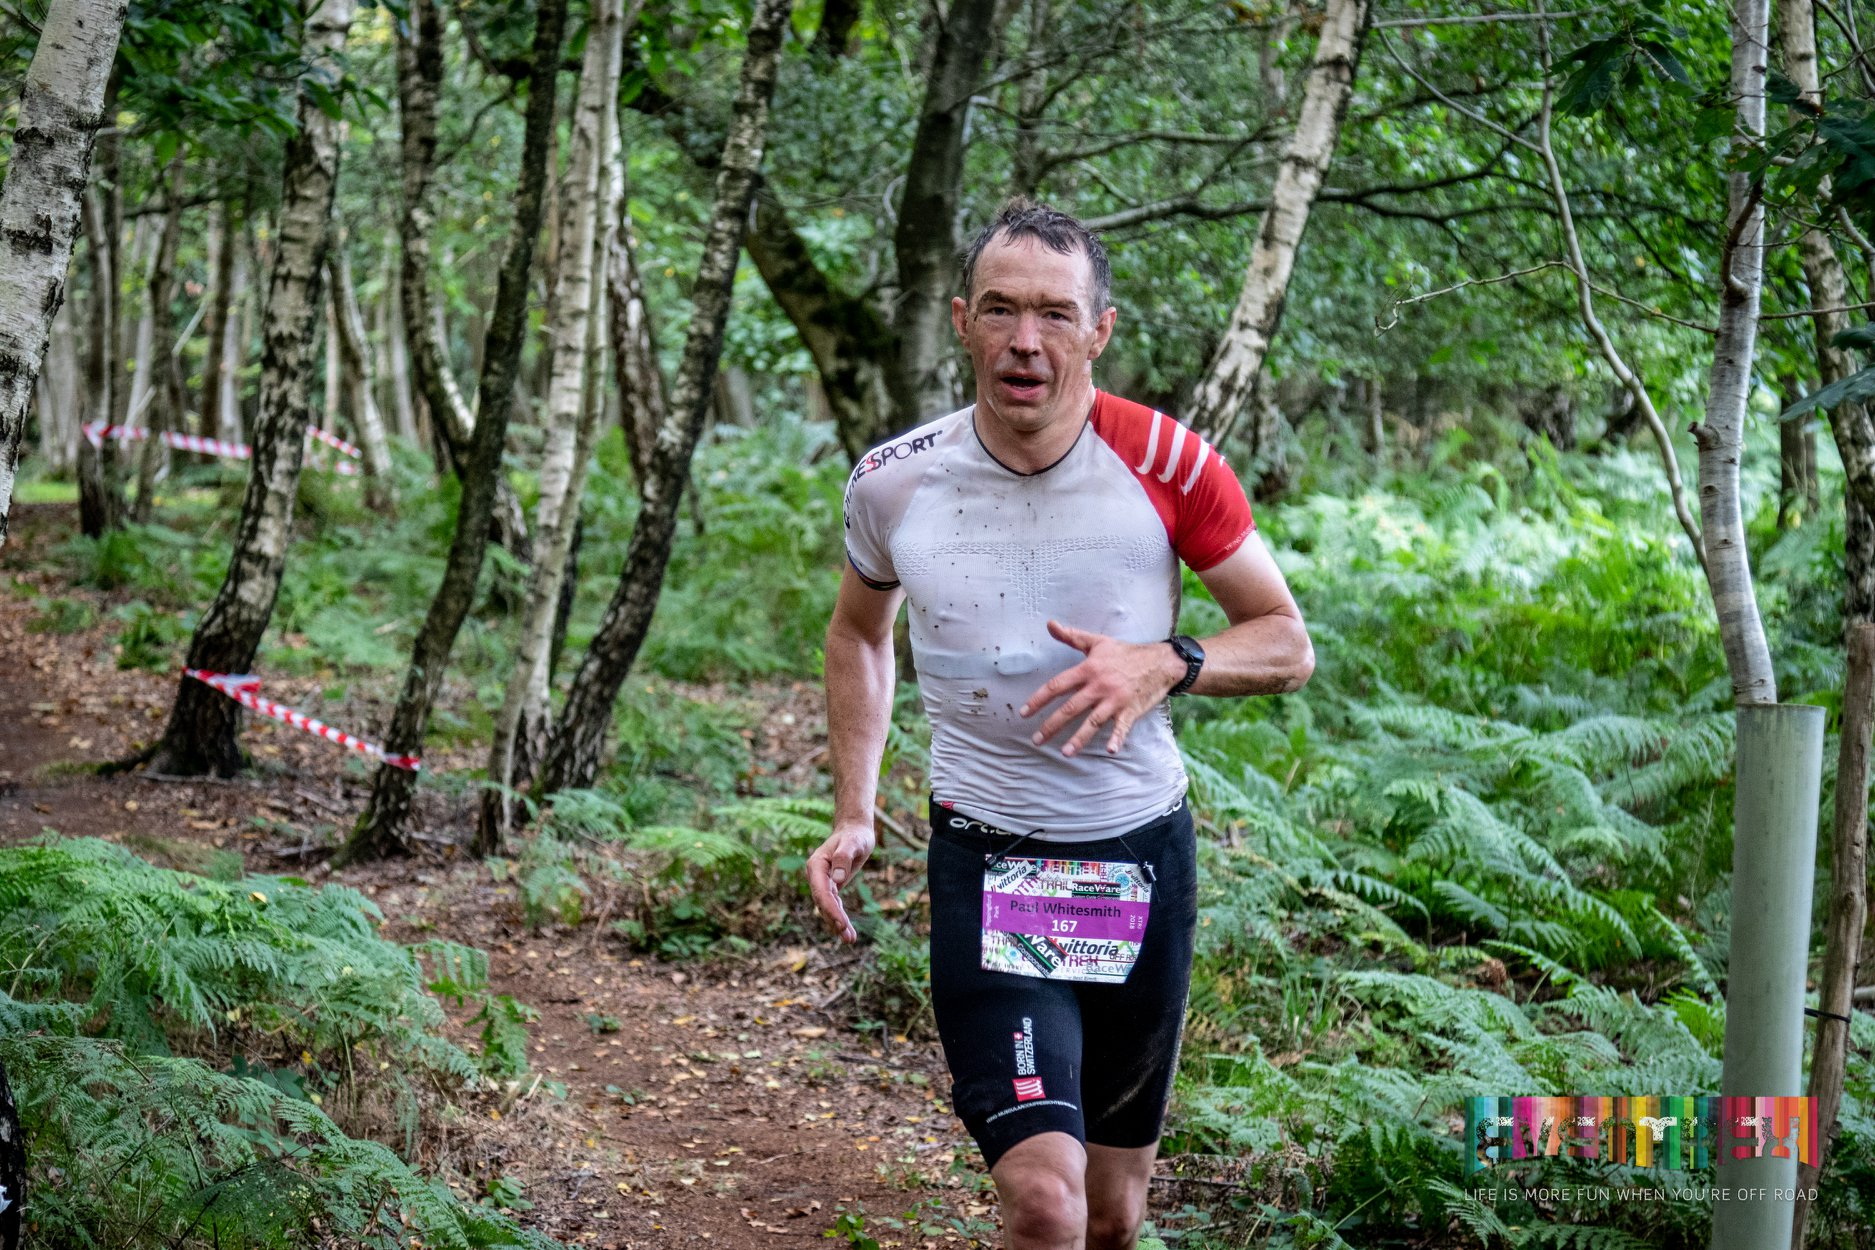 How to train for cross triathlon in two weeks